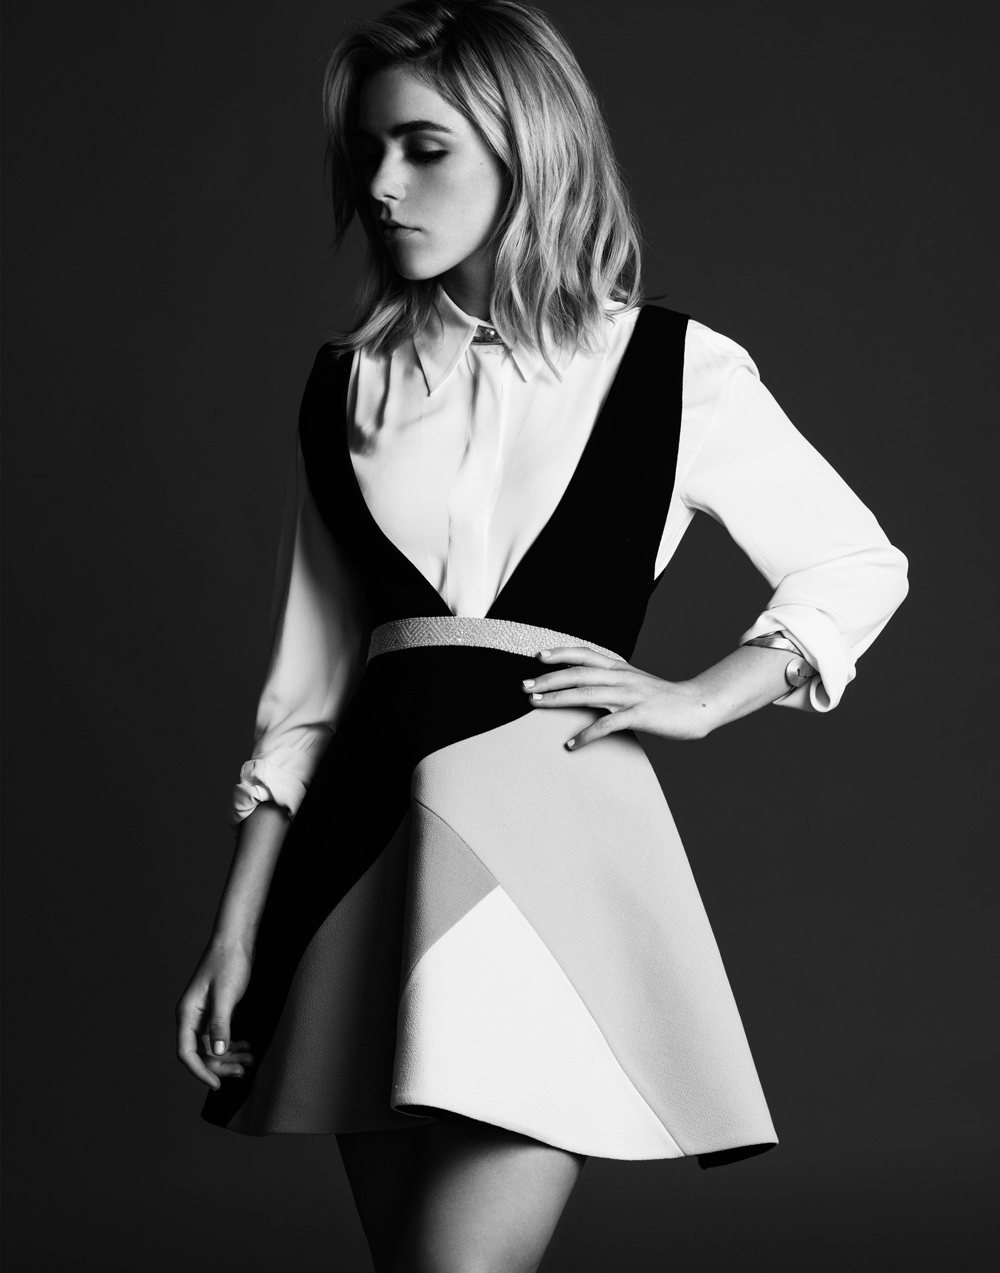 Kiernan Shipka in Black and White